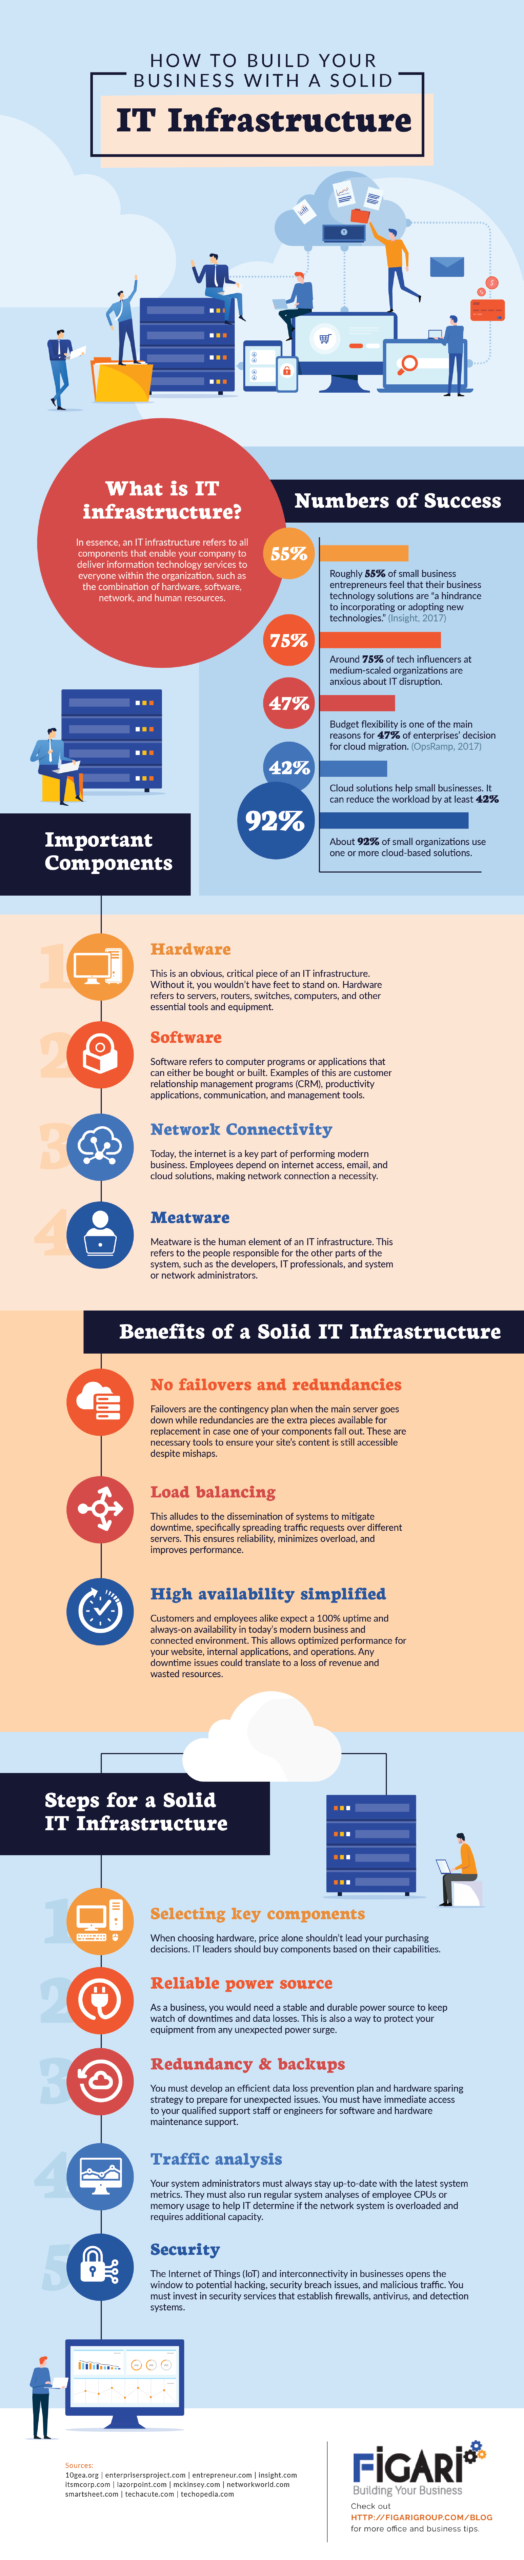 How to Build Your Business with a Solid IT Infrastructure